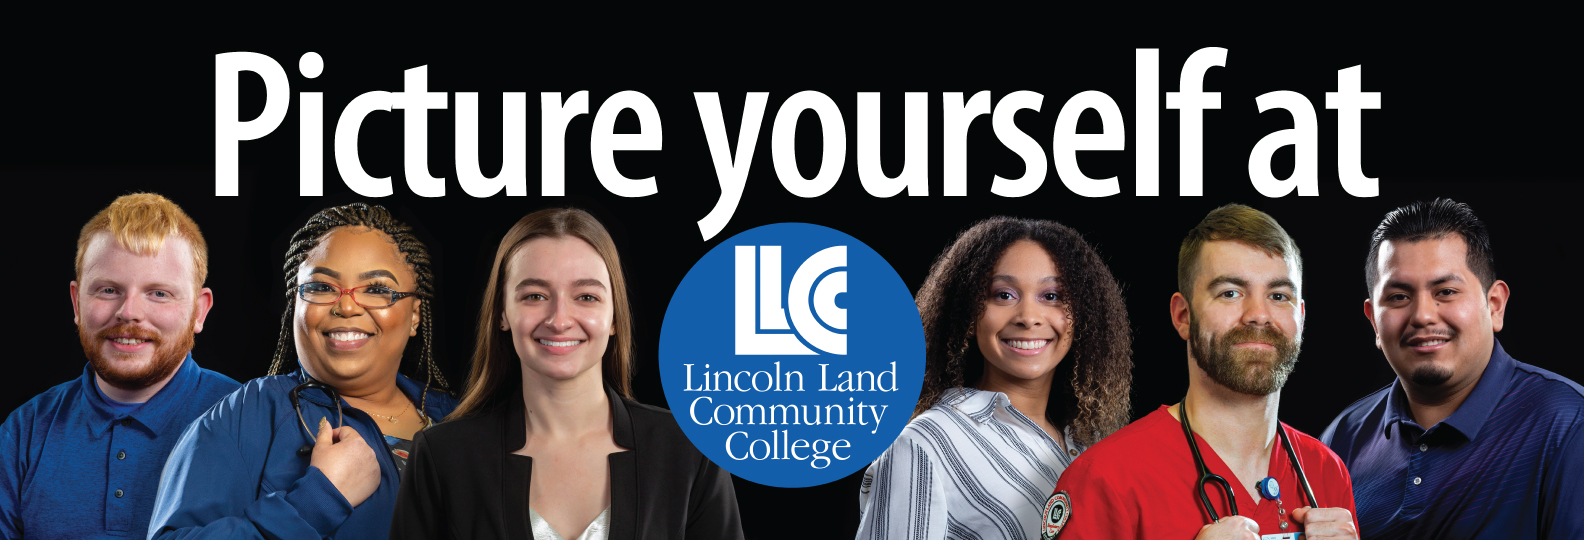 Picture yourself at LLCC Lincoln Land Community College